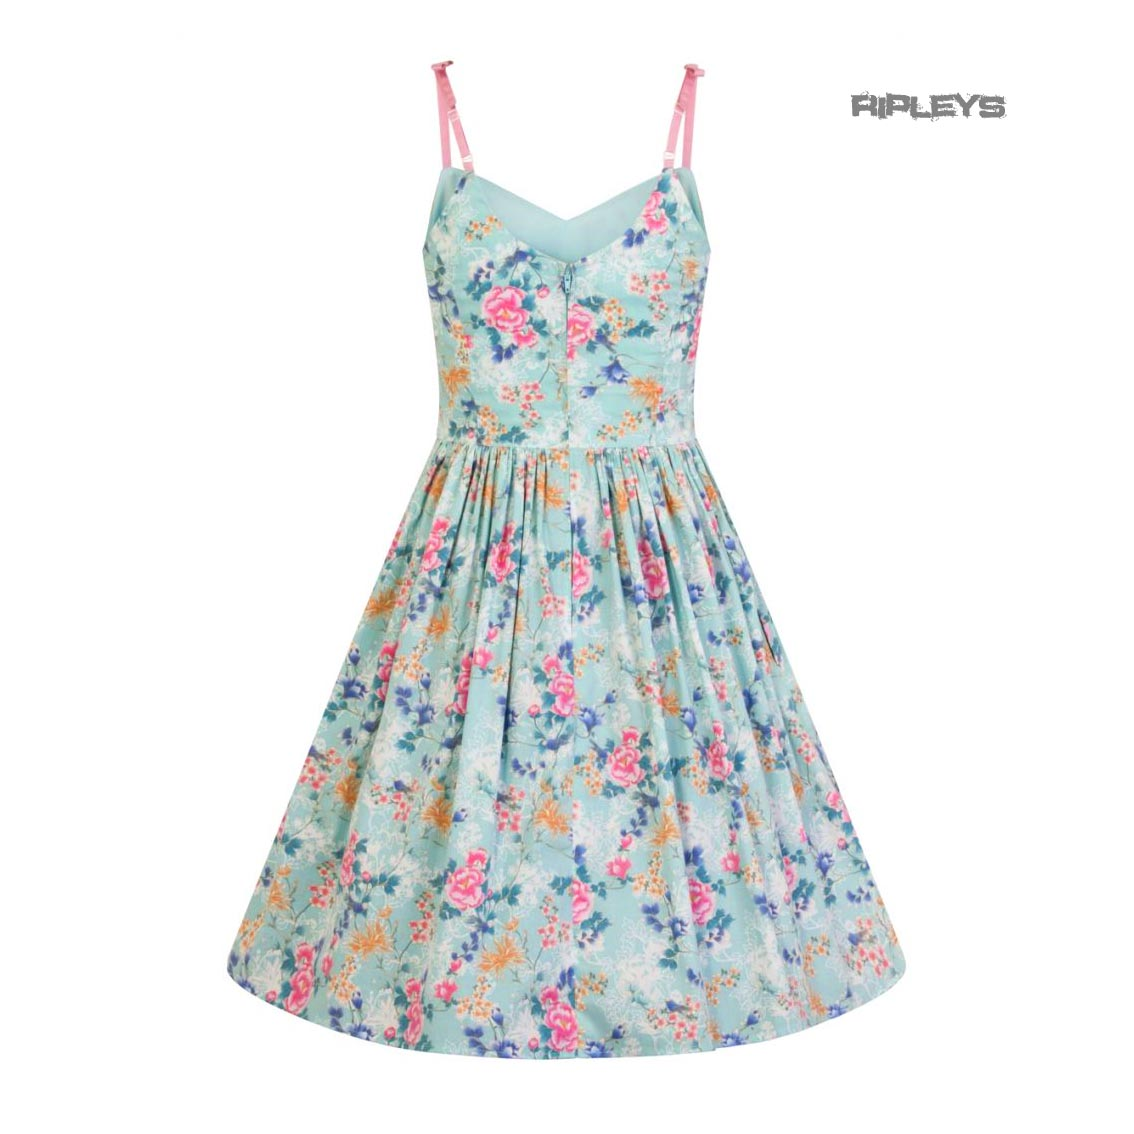 Hell-Bunny-50s-Mid-Length-Dress-Vintage-Blue-Pink-SAKURA-Flowers-Roses-All-Sizes thumbnail 9